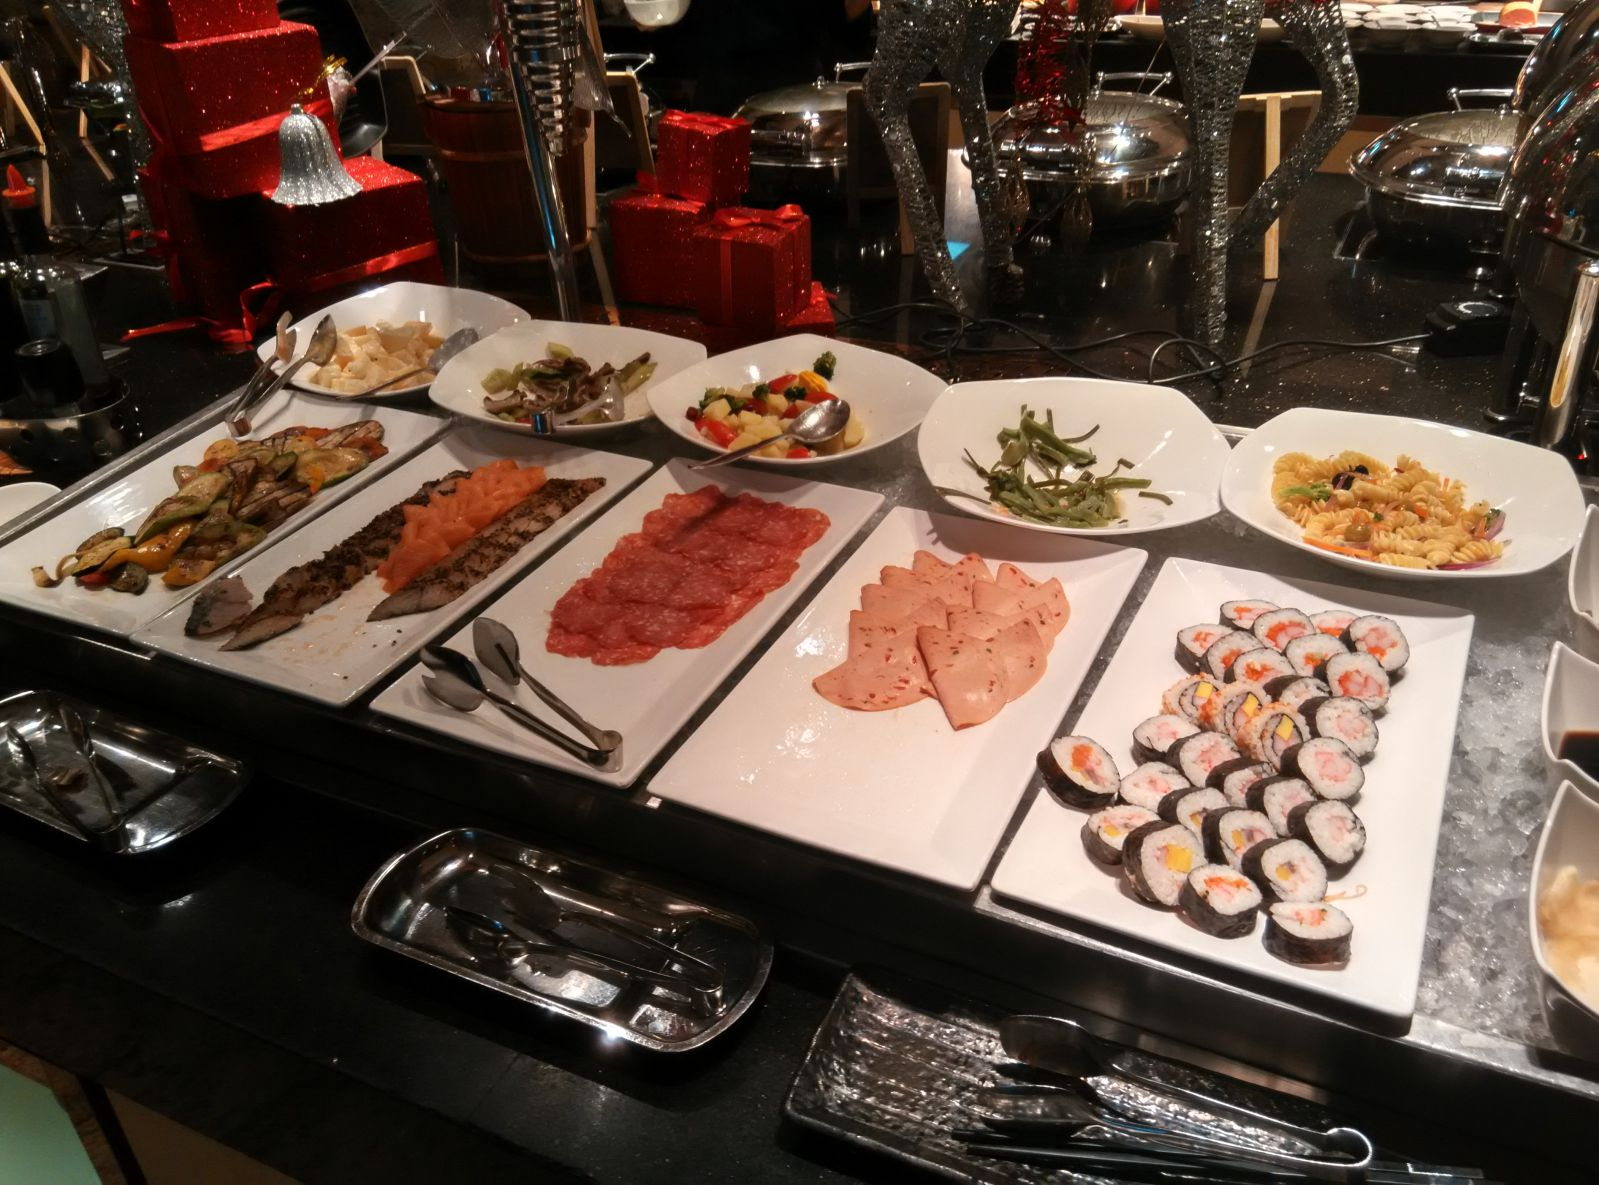 guangzhou-marriott-tianhe-breakfast-4